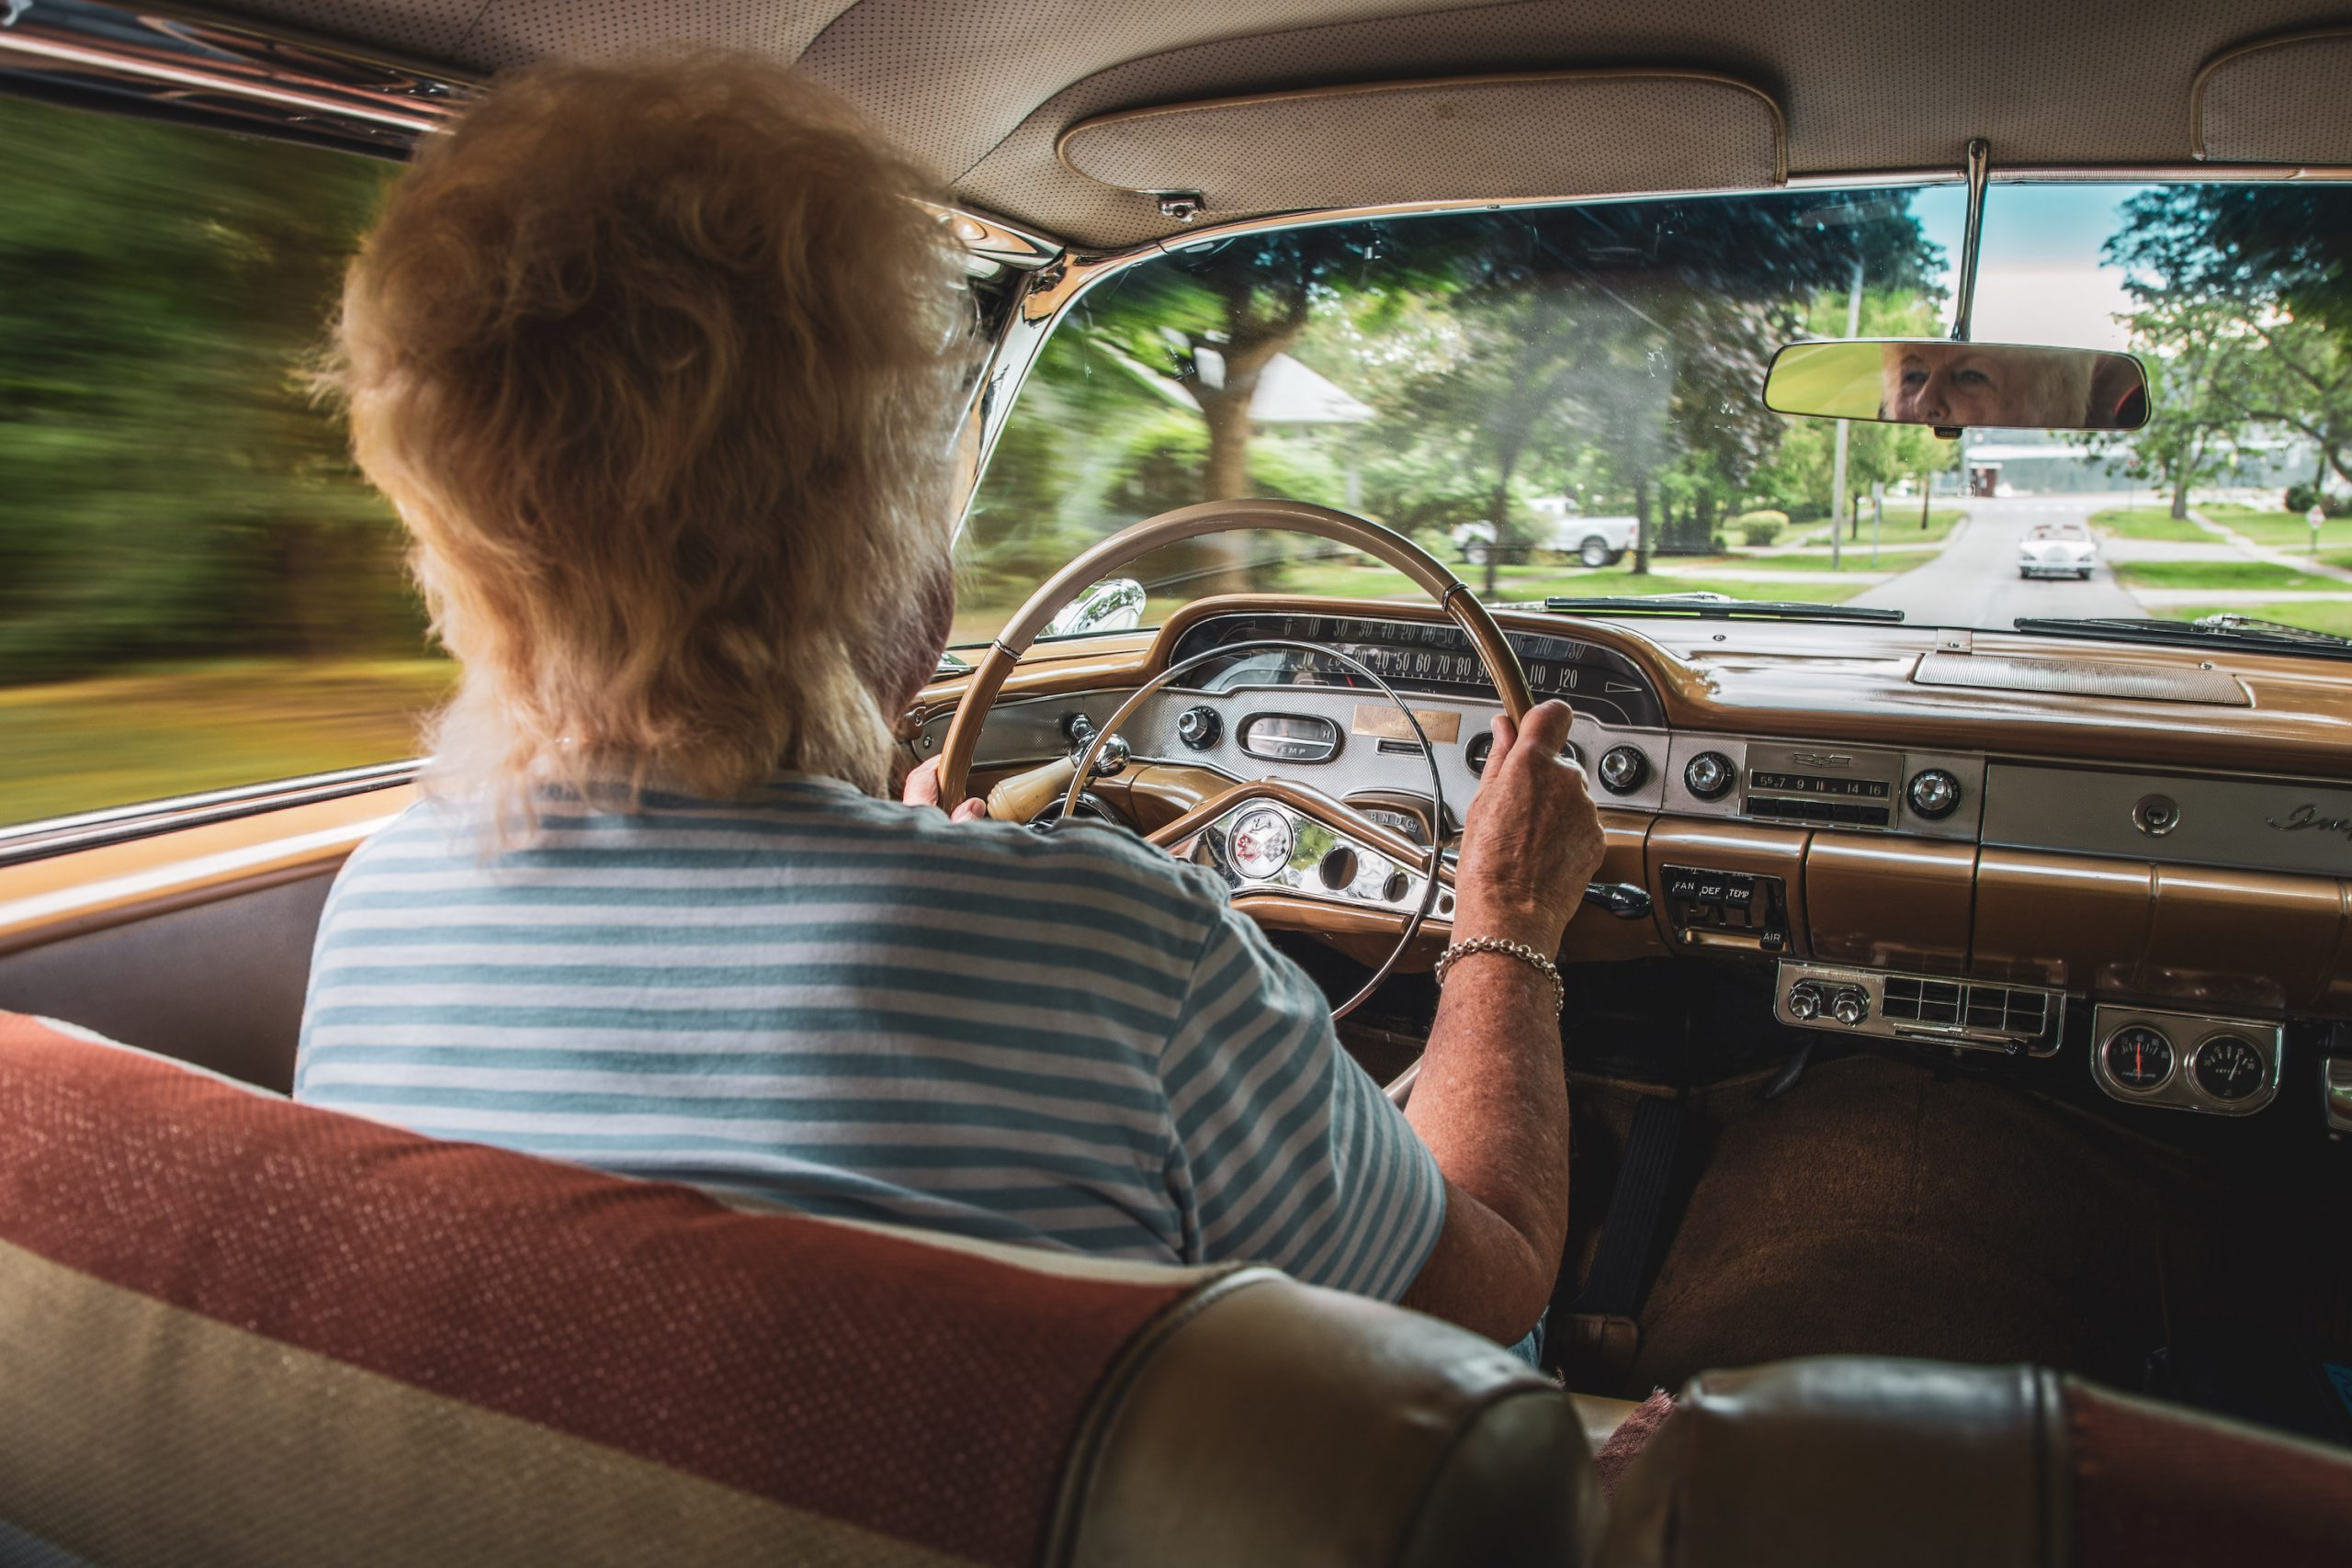 1958 Chevrolet Impala Owner Driving